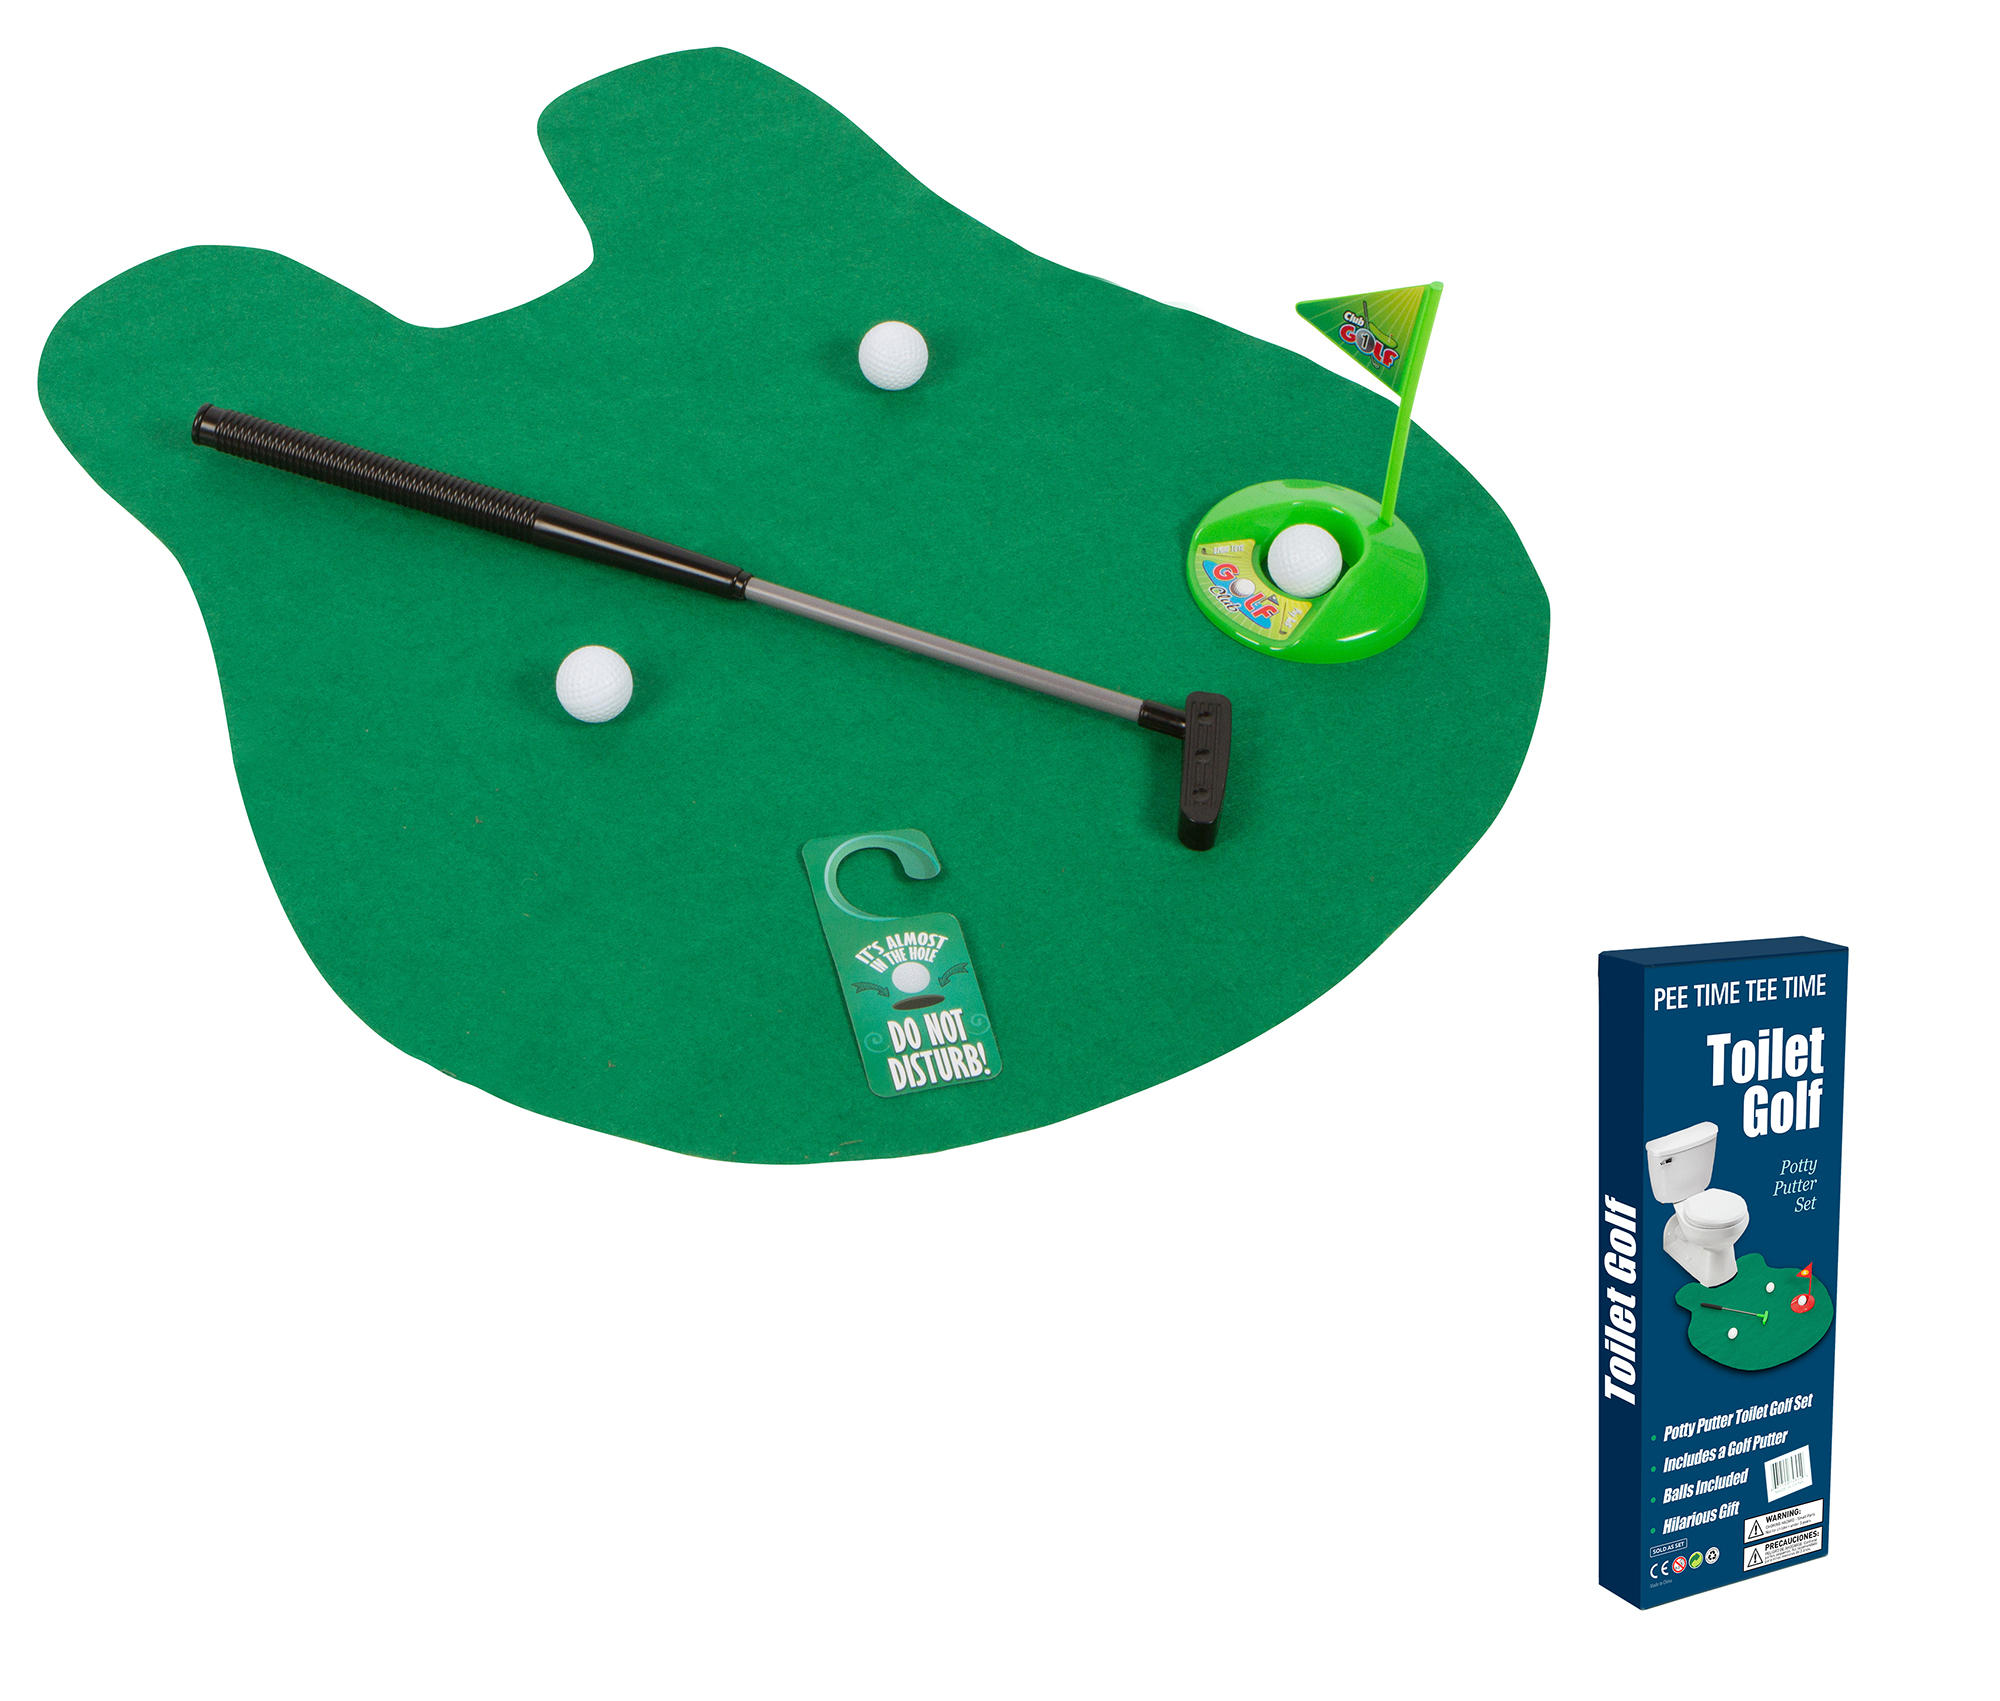 Toilet Golf Joke & Novelty Set Play Golf on the Toilet By EZ Drinker by Trademark Innovations